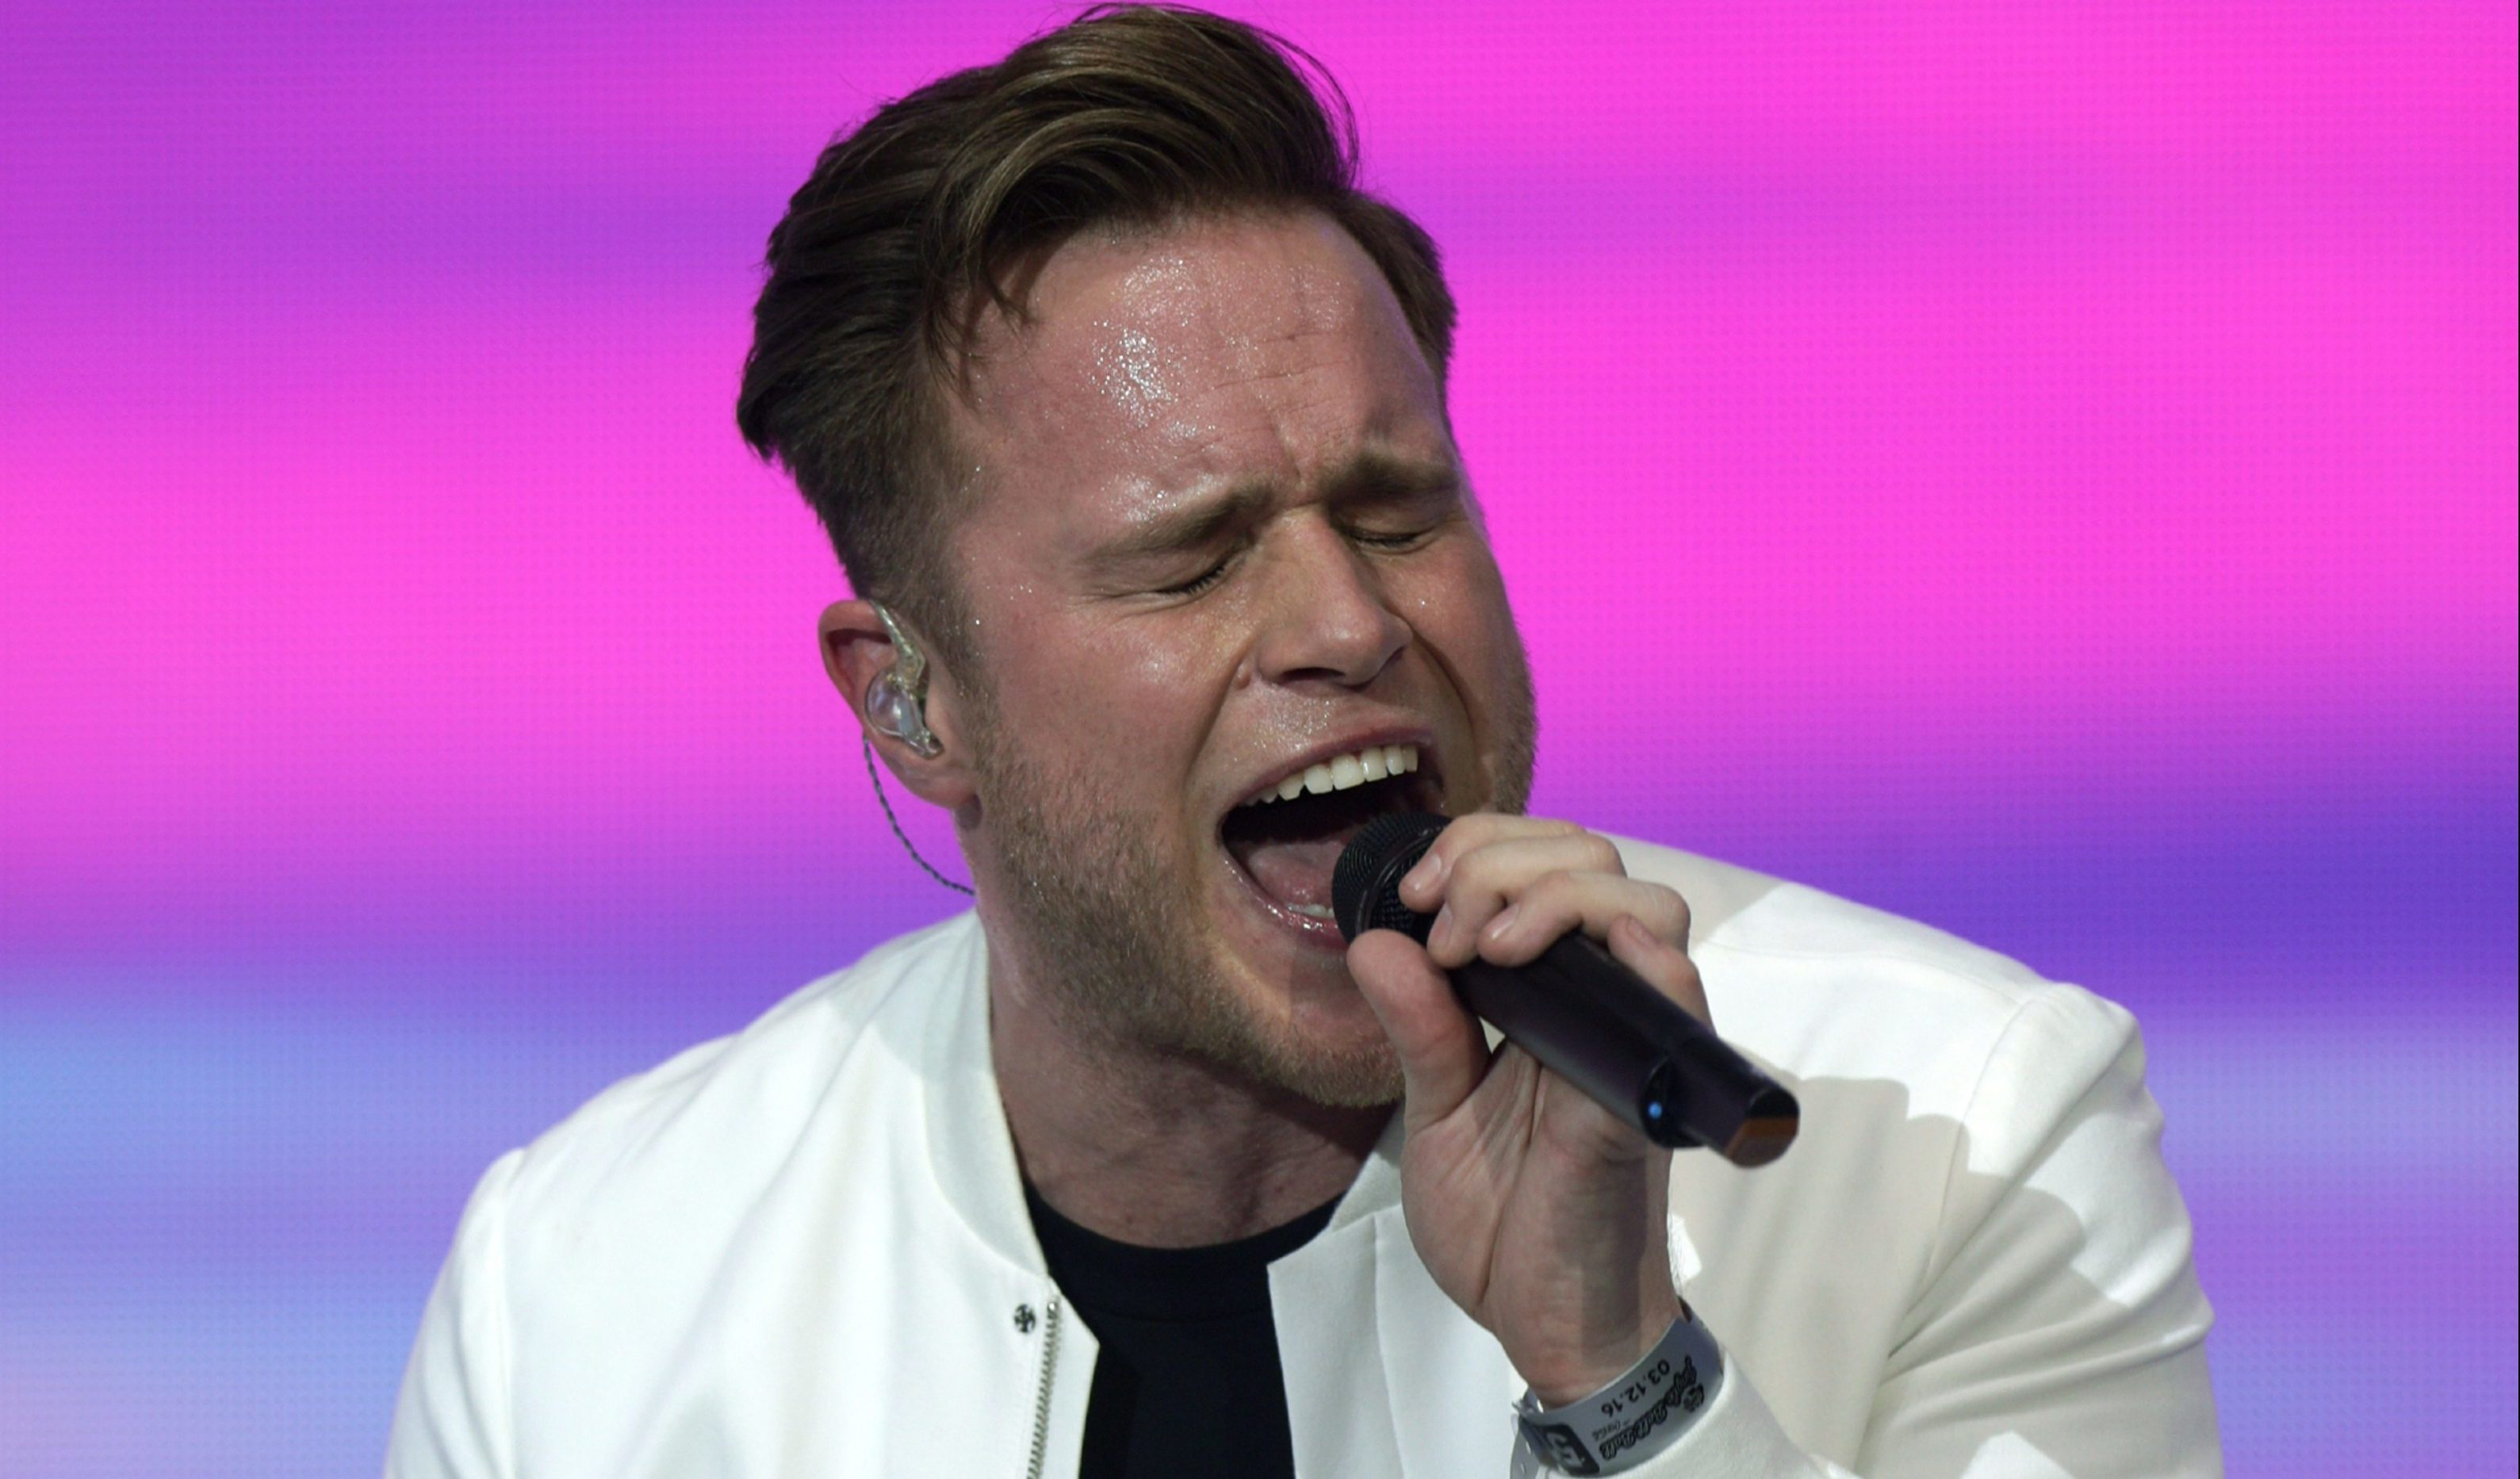 Olly Murs in action.